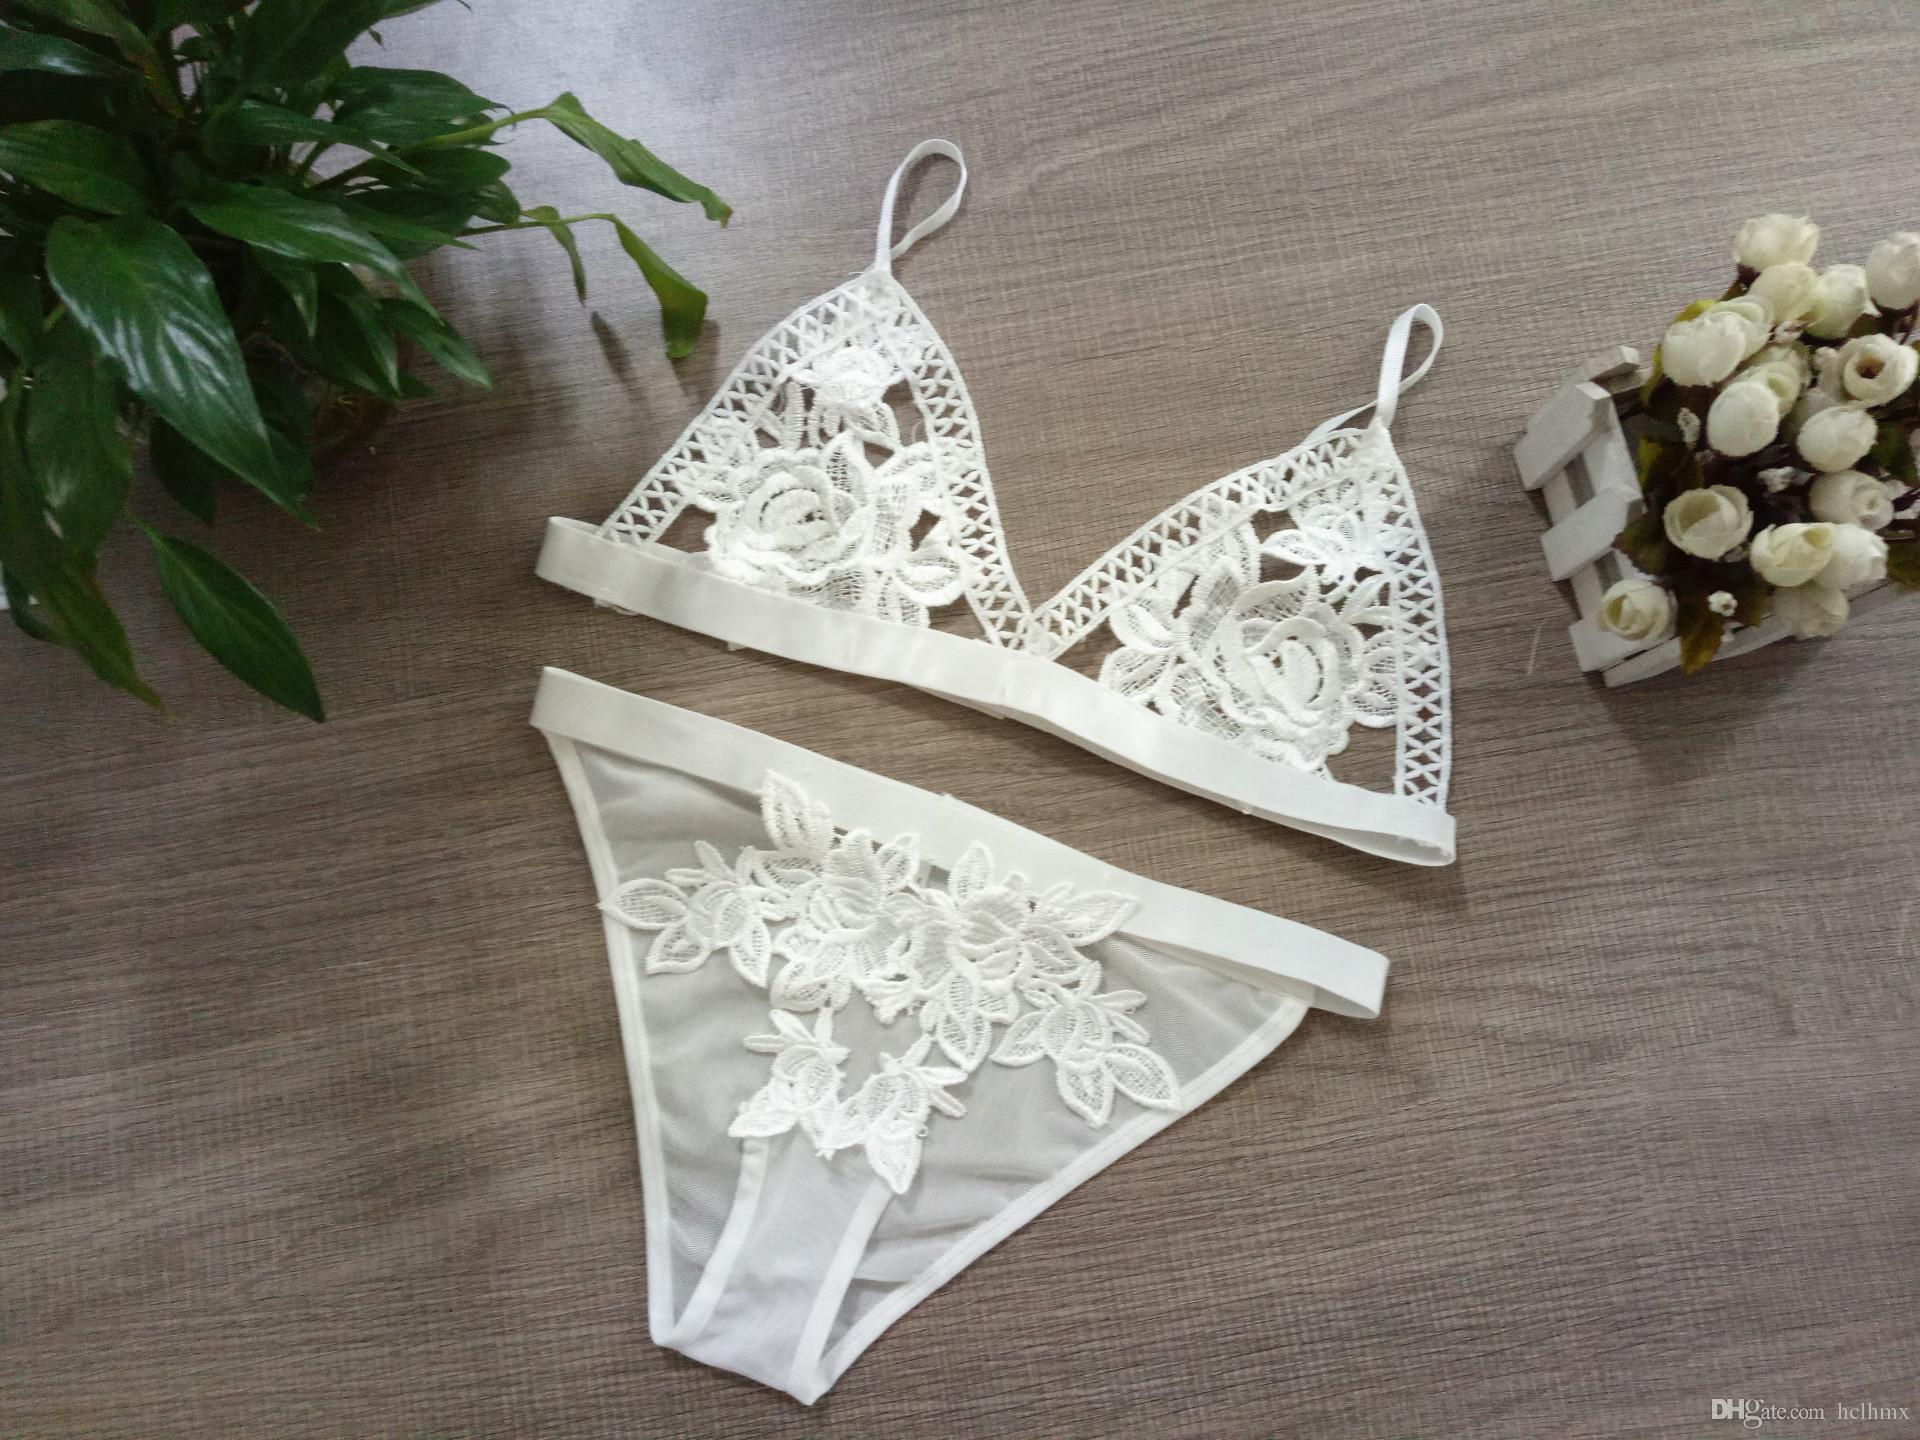 547d45e8c 2019 Sexy Sheer Lacy Lingerie Set Wedding Gift For Her Soft Wire ...